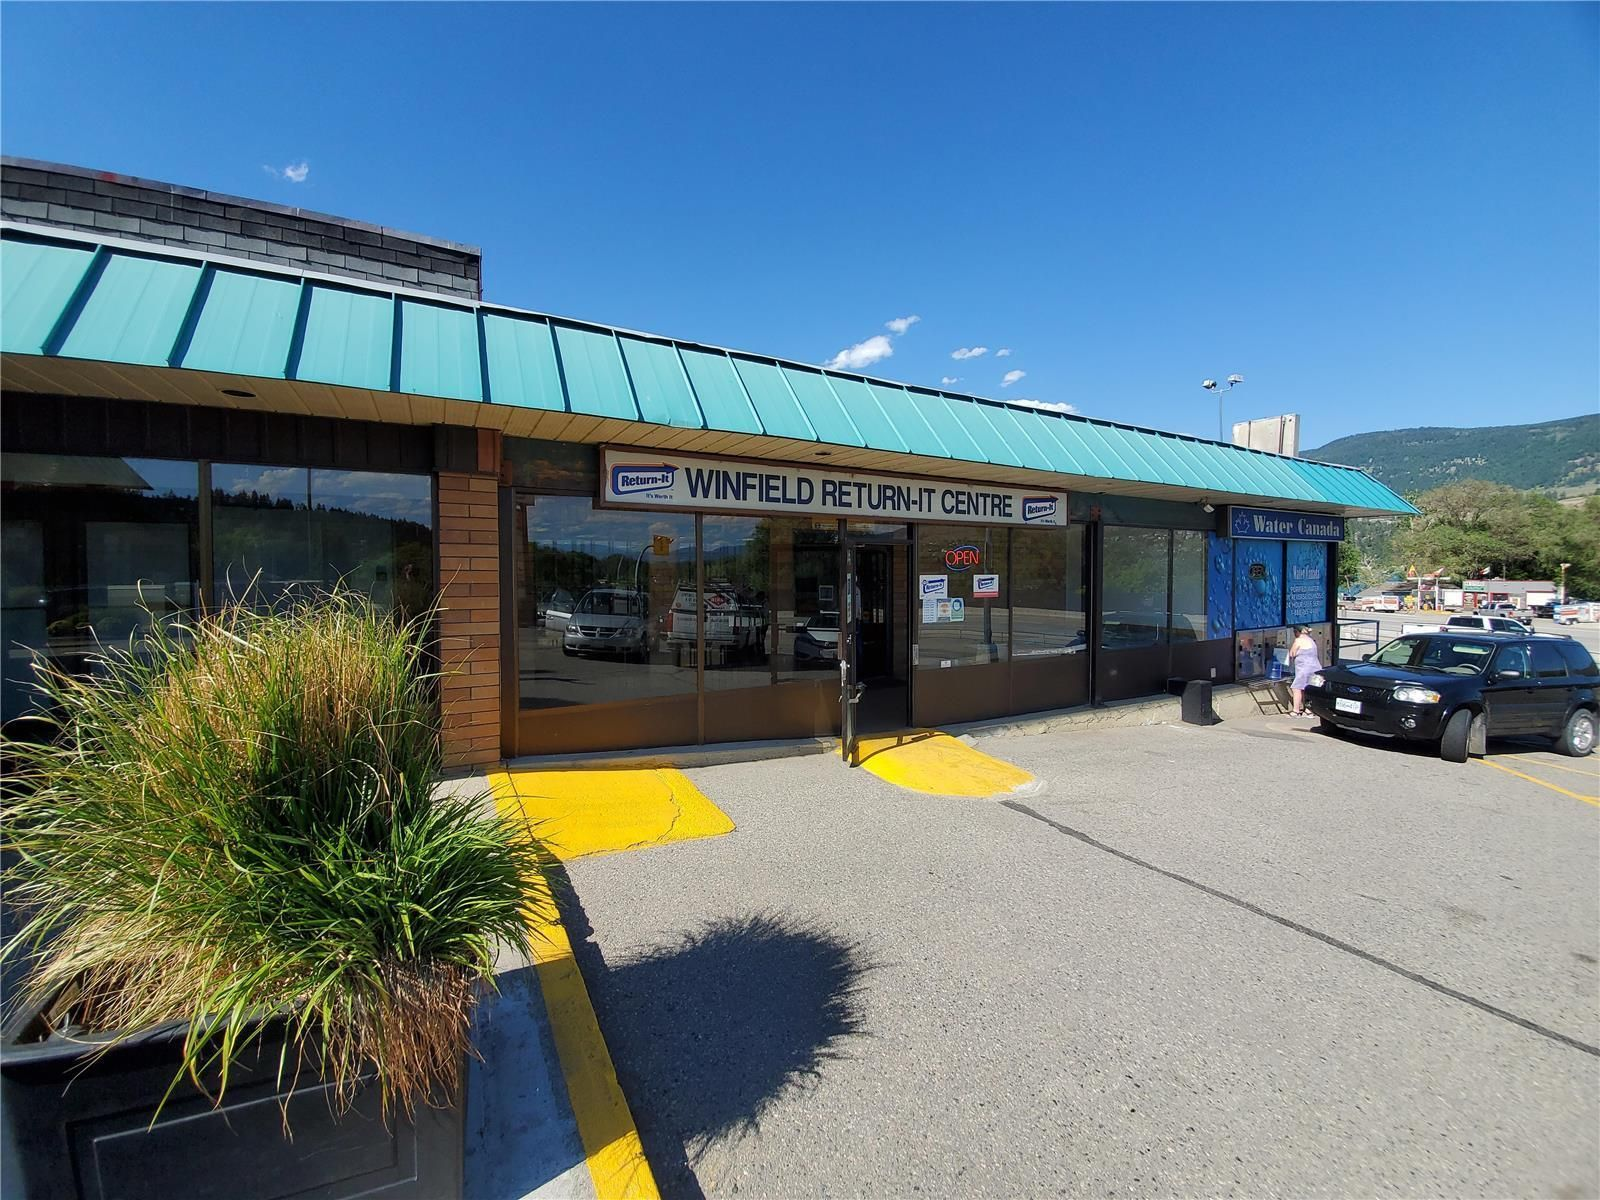 Main Photo: #4 11852 Highway 97, N in Lake Country: Business for lease : MLS®# 10233196